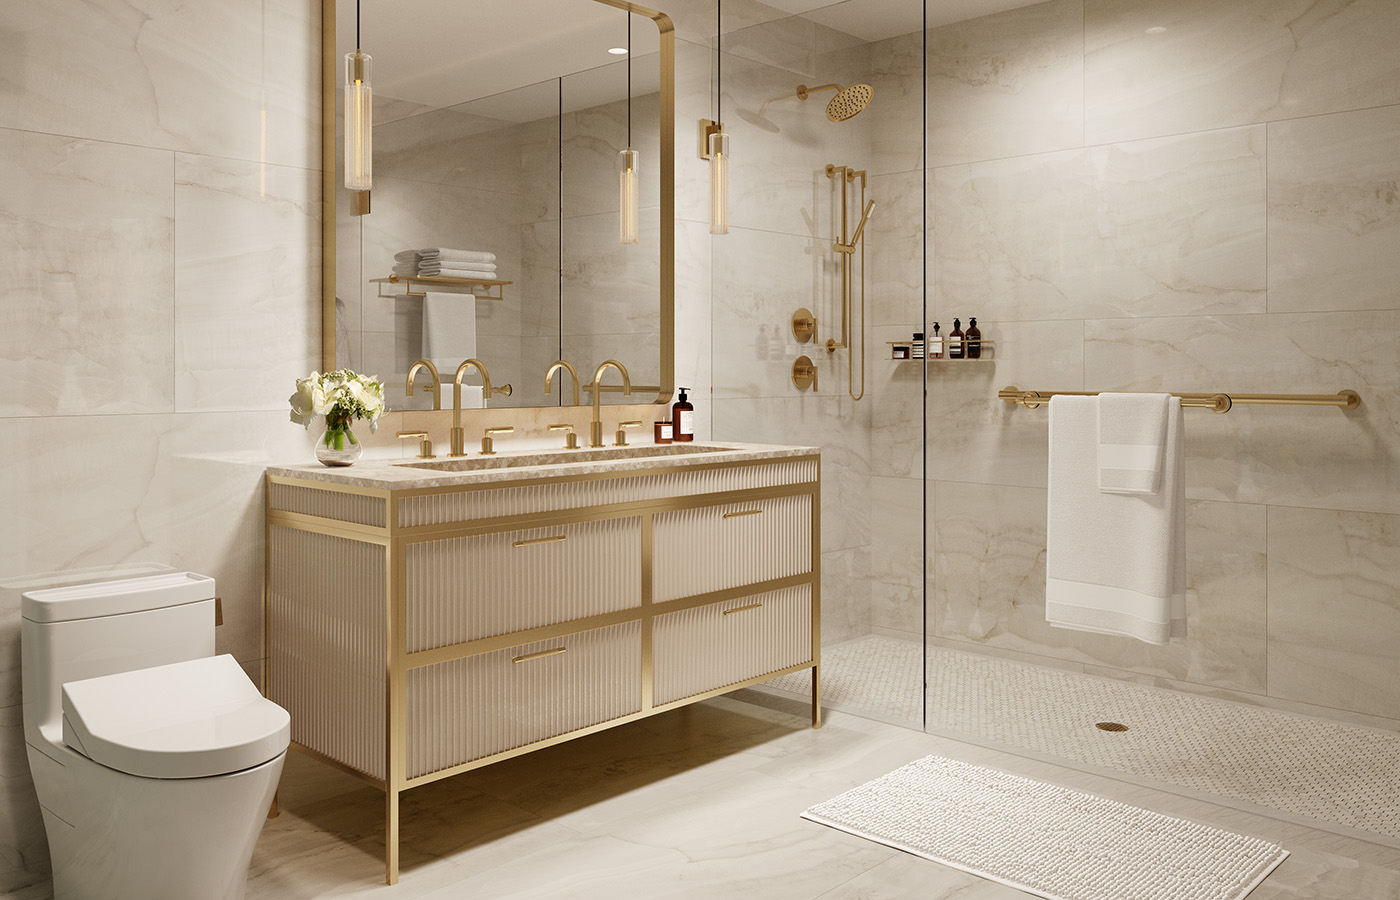 The bathroom features custom-designed vanity with Botticino marble counters and custom Symmons brass fixtures. The base is removable for wheelchair access.